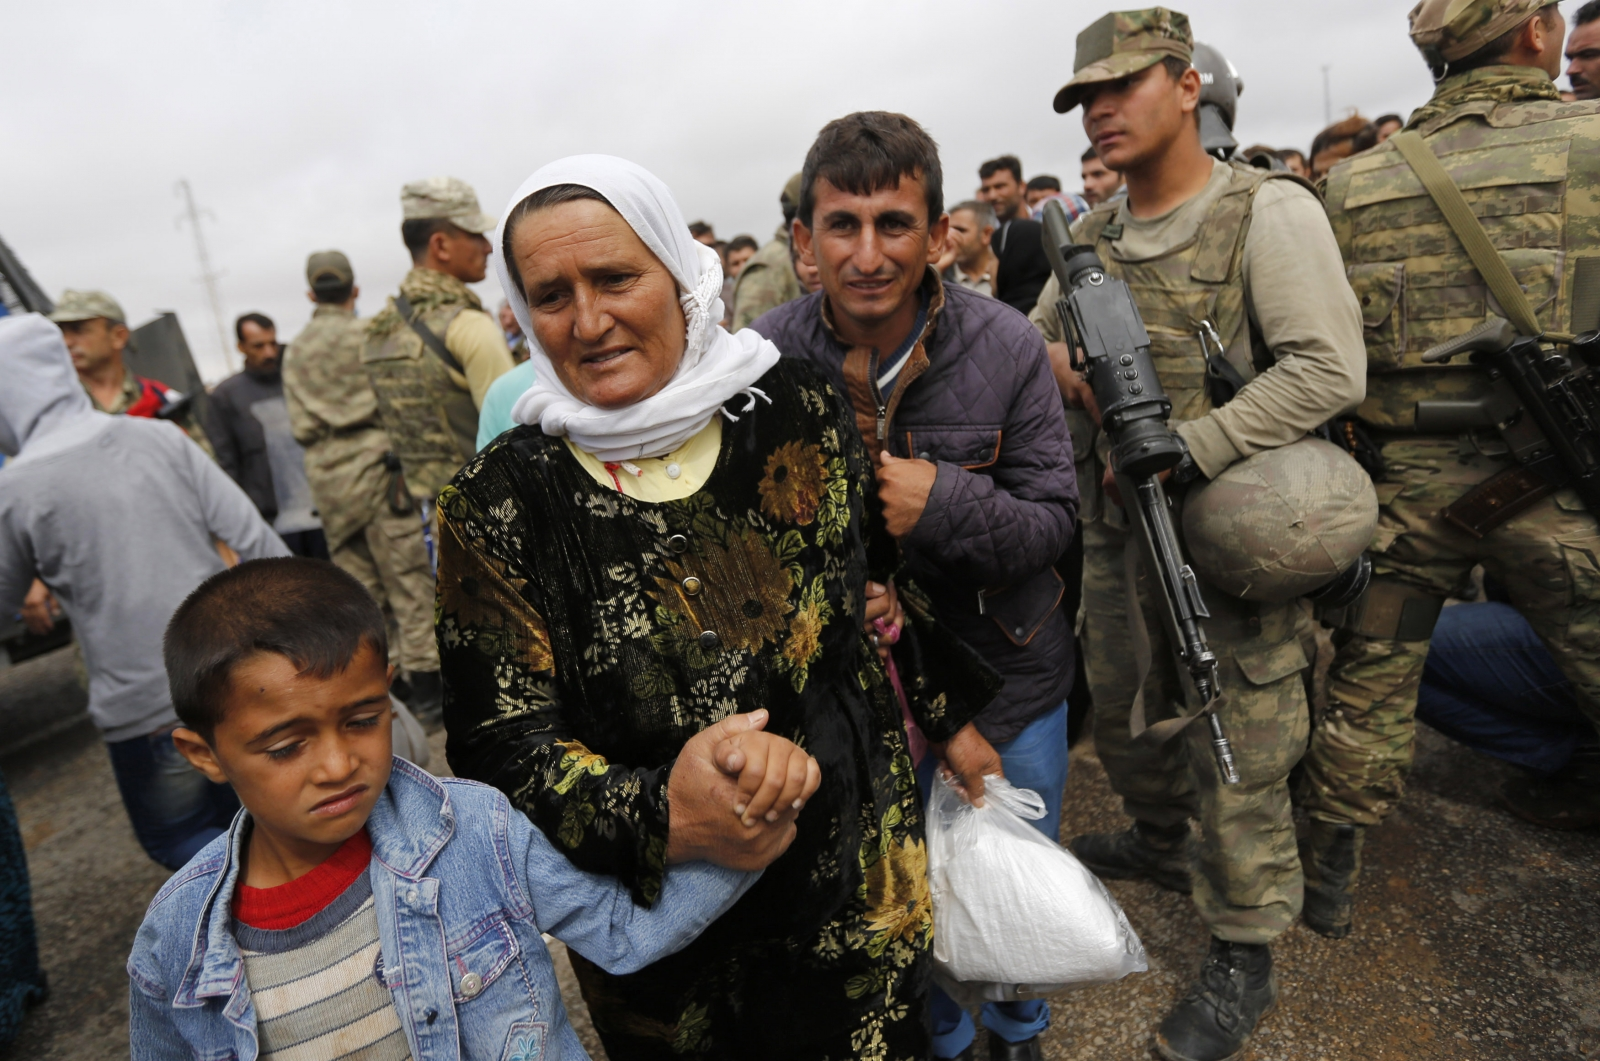 Syrian Kurds walk through Mursitpinar border crossing to return to their homes in the Syrian city of Kobani